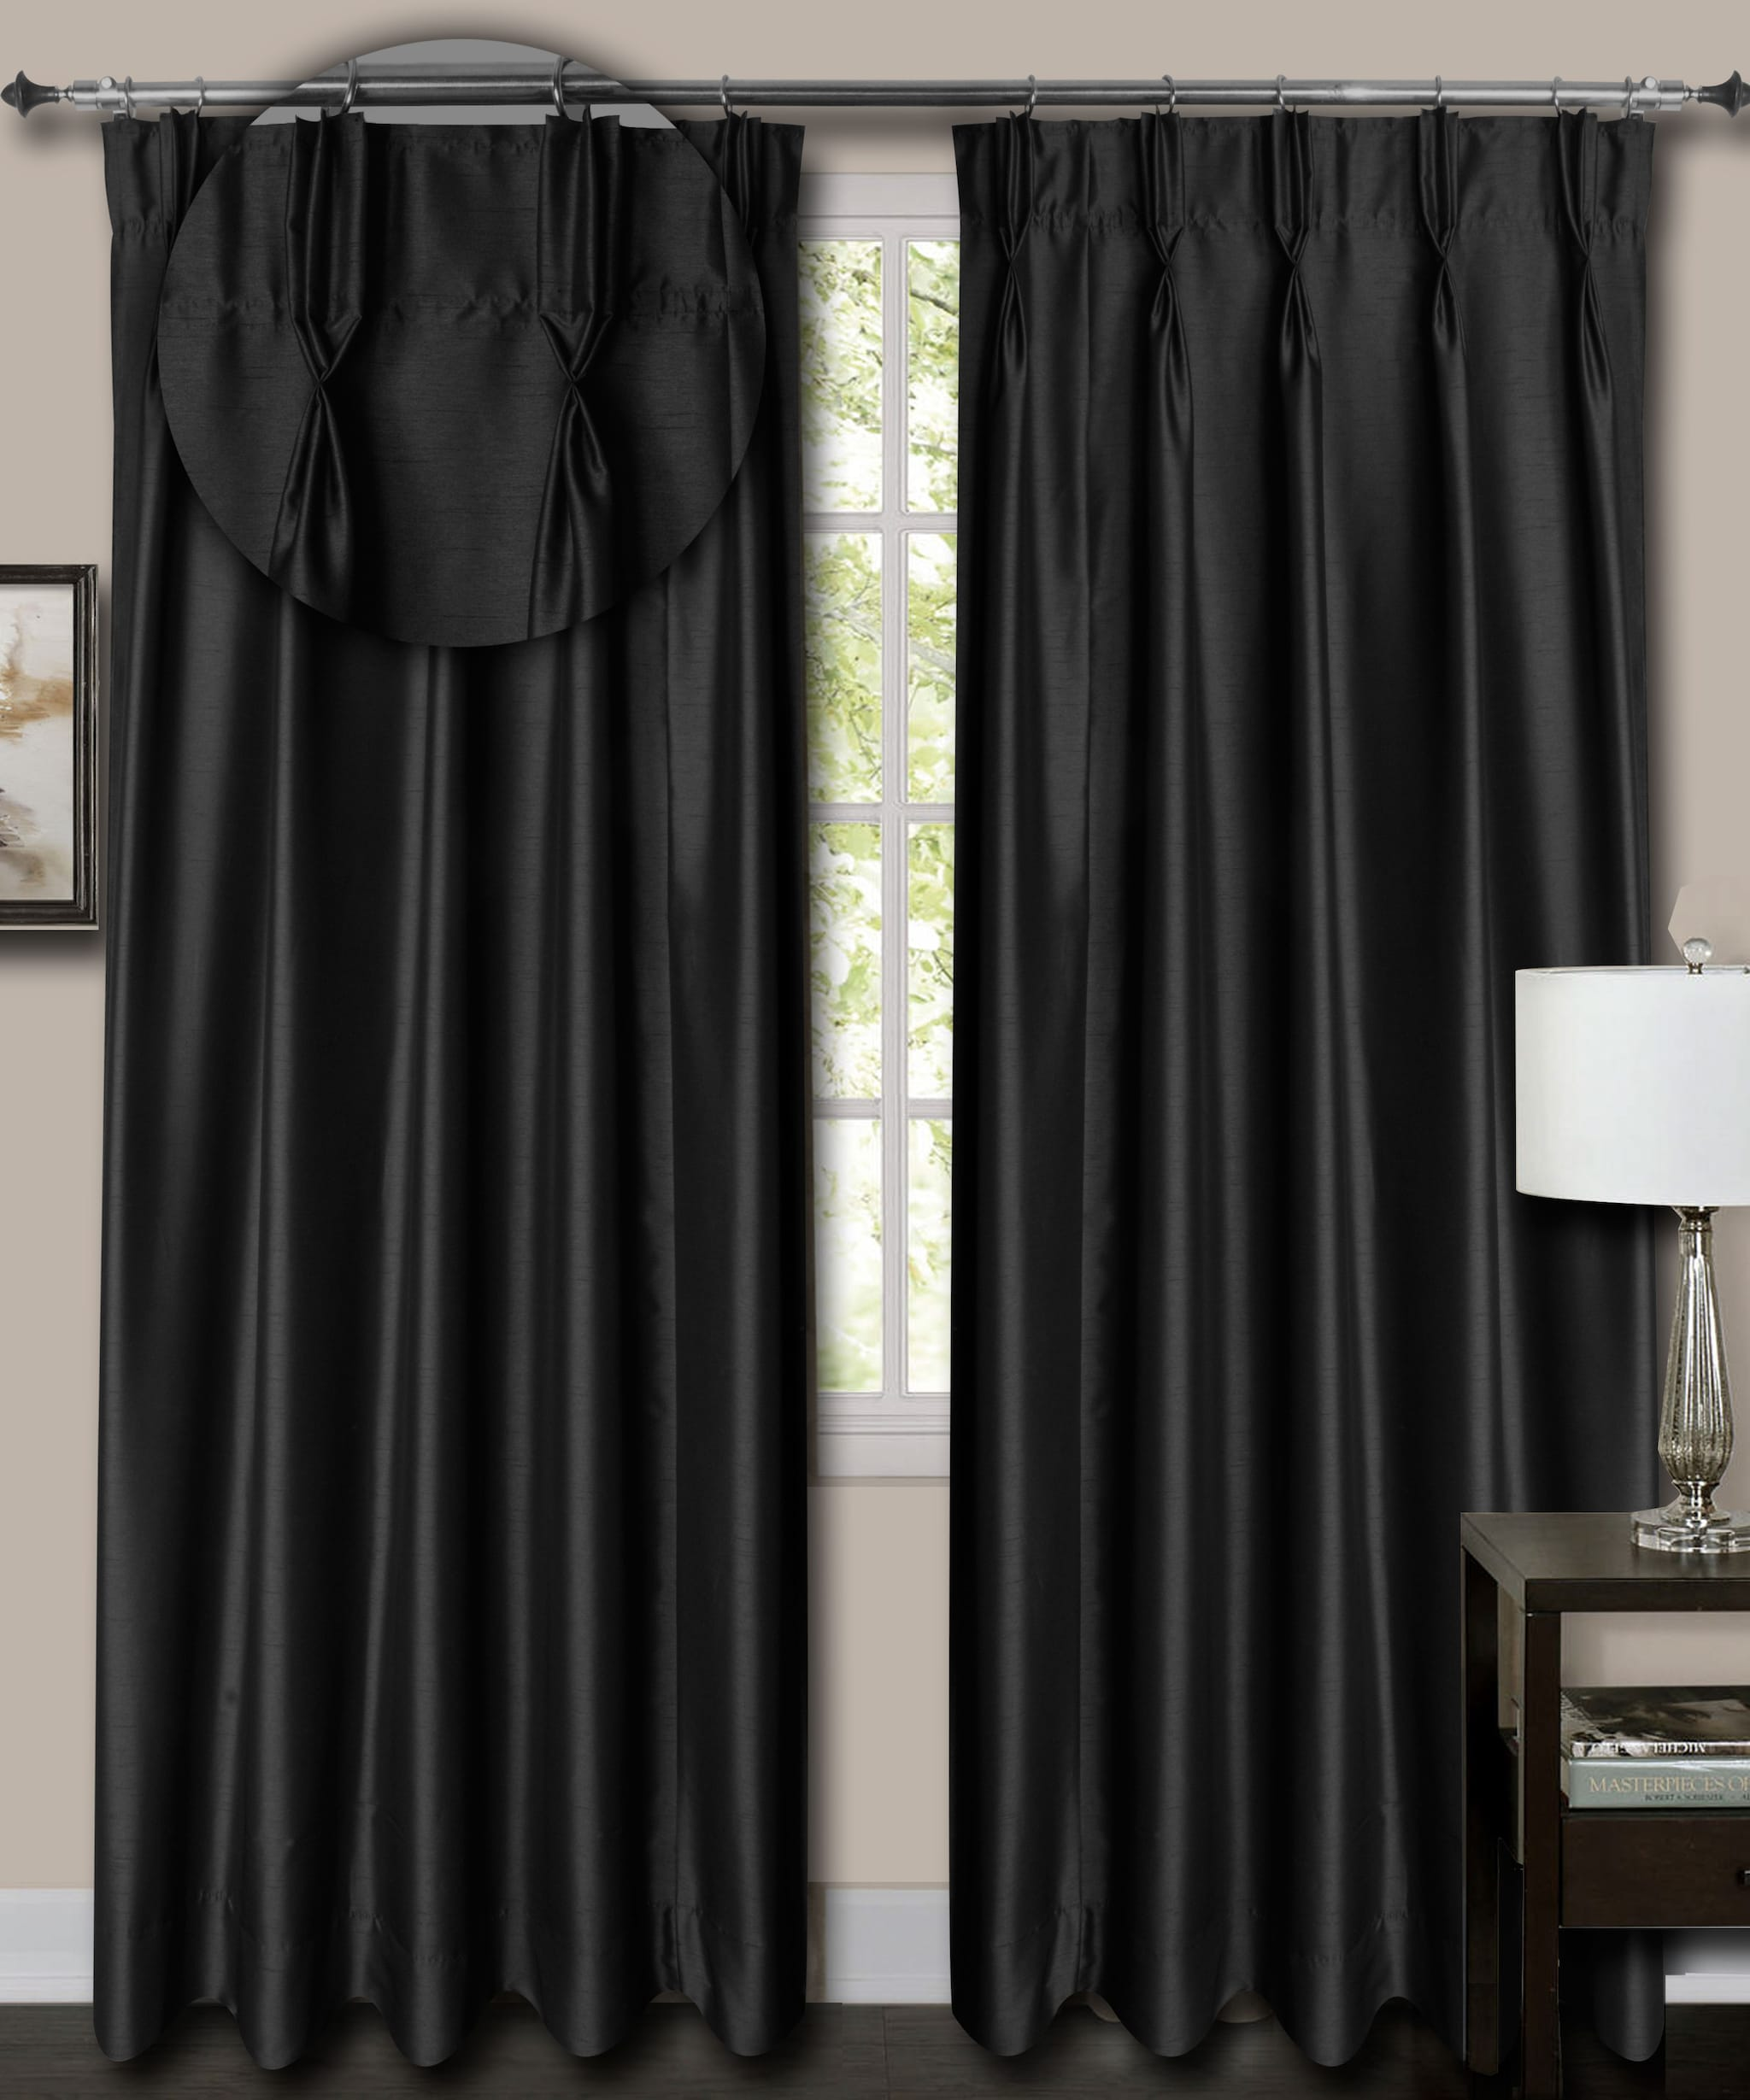 "French Pleat Top Black Faux Silk Dupioni Curtains. (78"" Wide,5 Feet Long,Blackout Lining)"